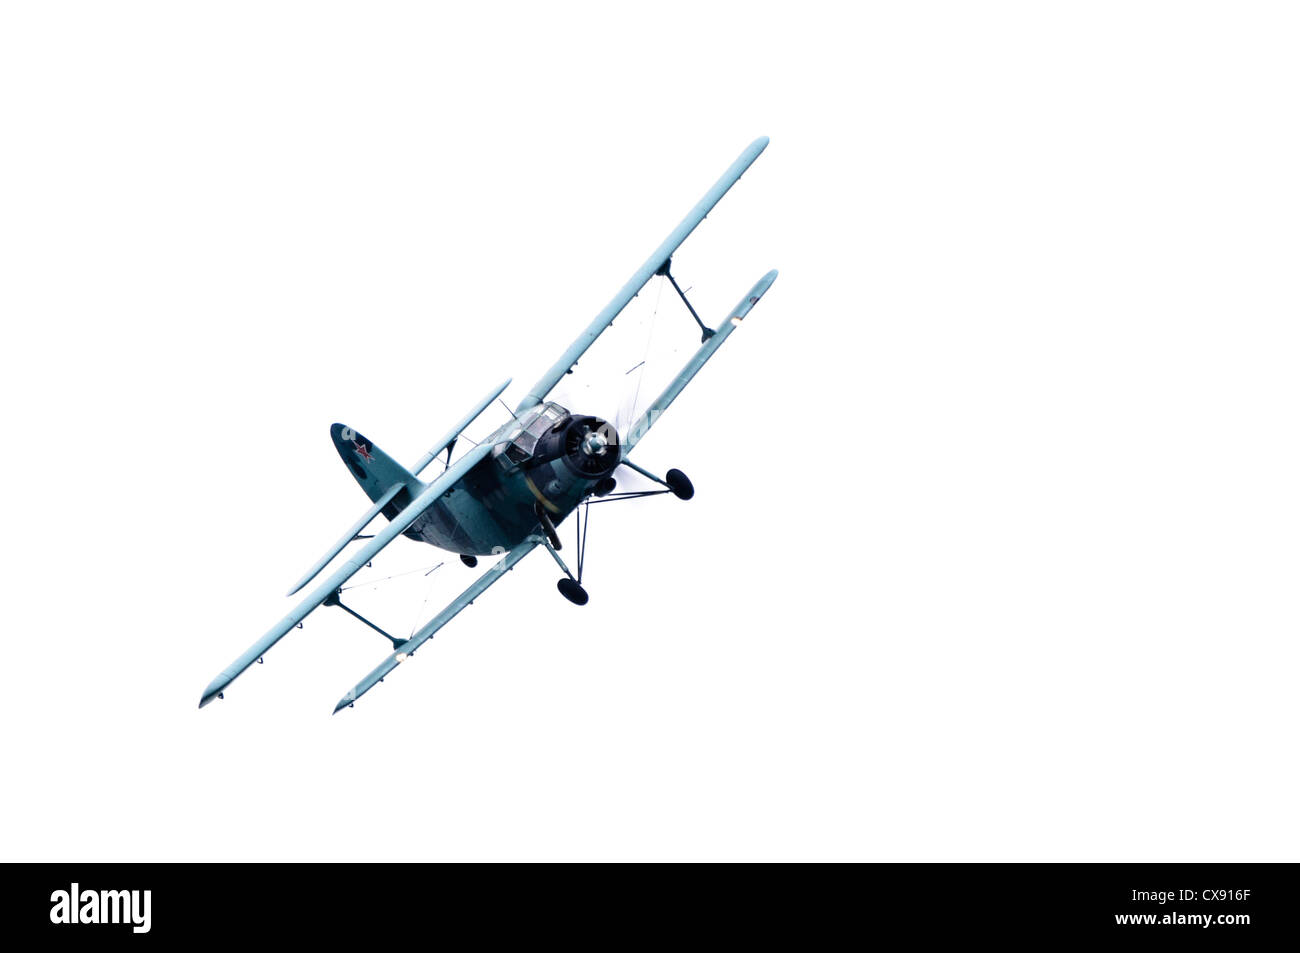 Russian Antanov AN2 biplane (LY-AUP) - Stock Image